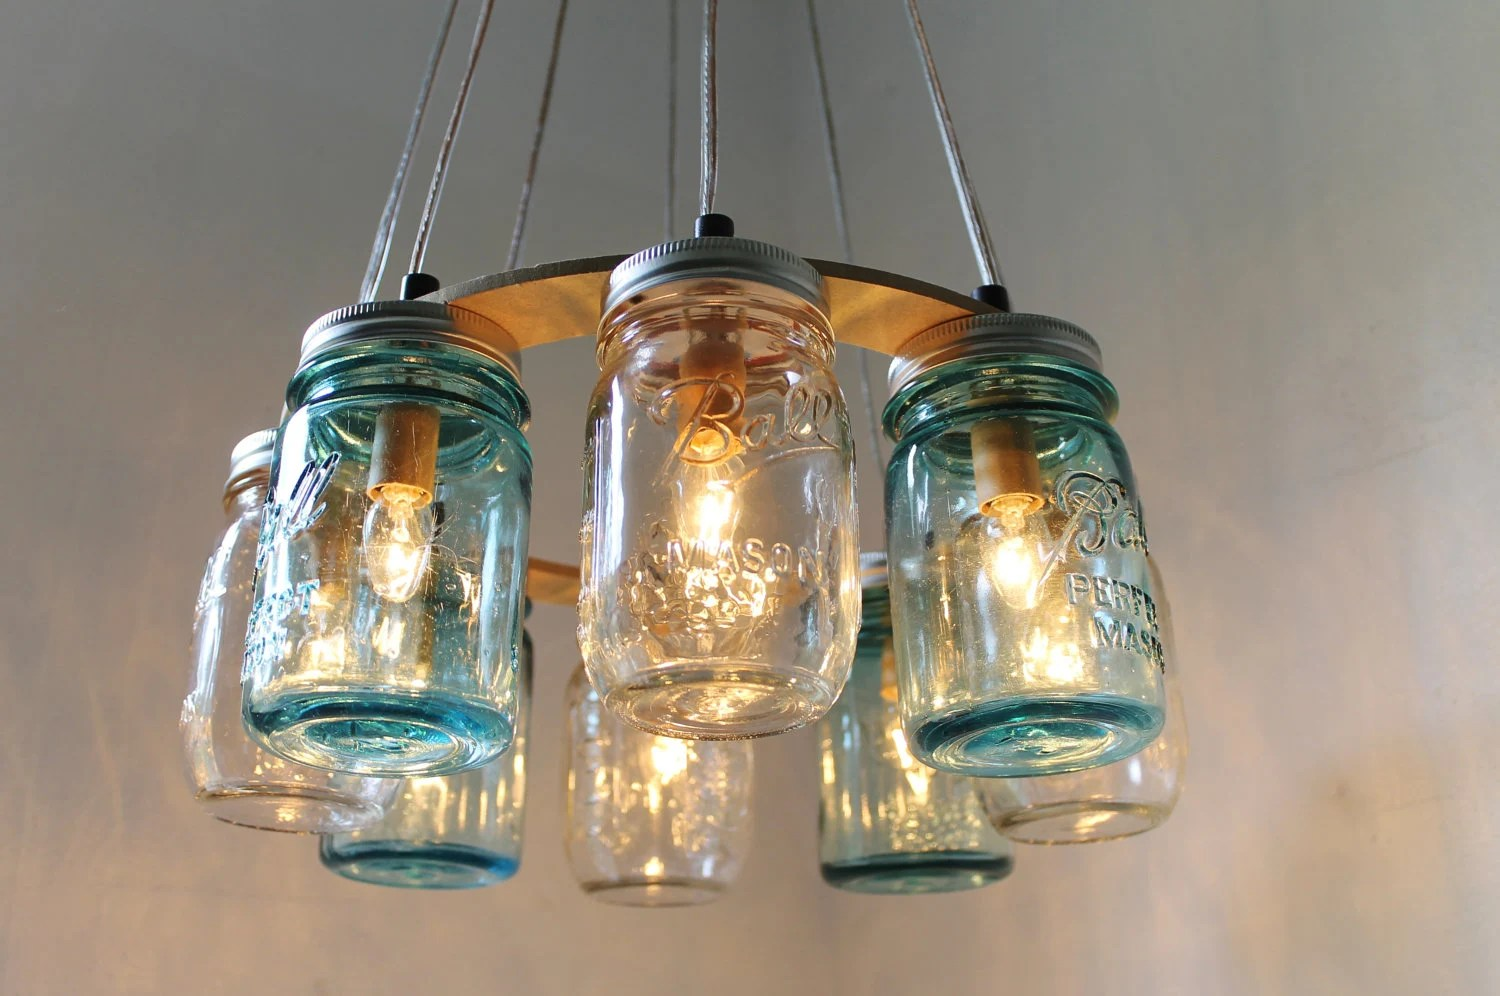 Beach Hanging Lights Mason Jar Chandelier Beach House Mason Jar Lighting Fixture